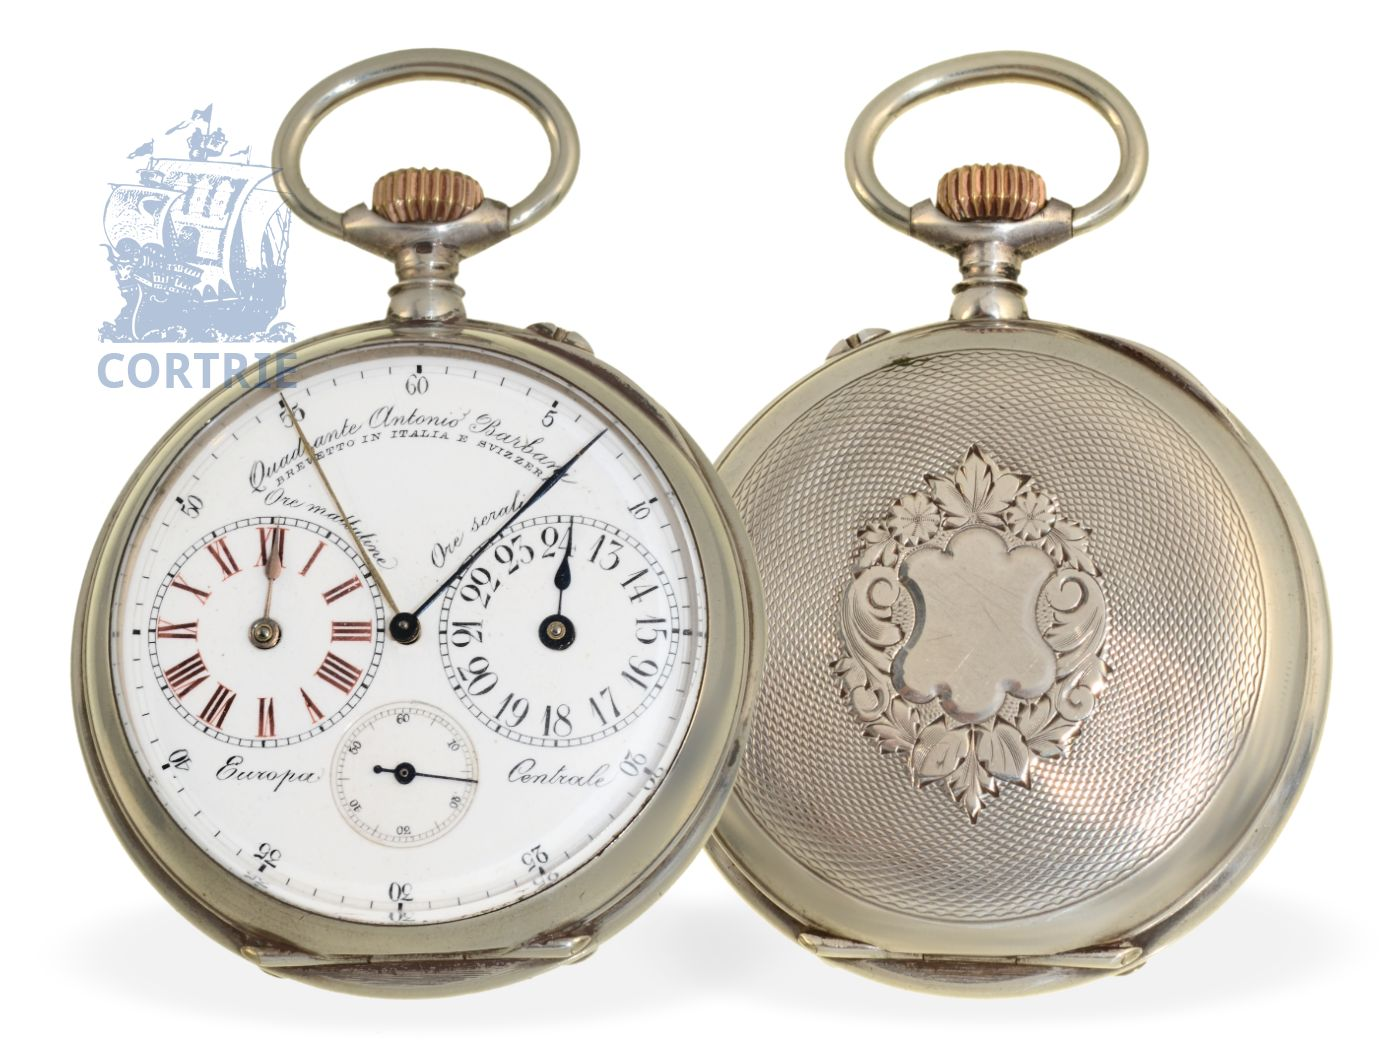 Pocket watch: extremely rare Italian deck watch with 2 time zones and 2 central minute hands, signed Barbani, ca. 1890-